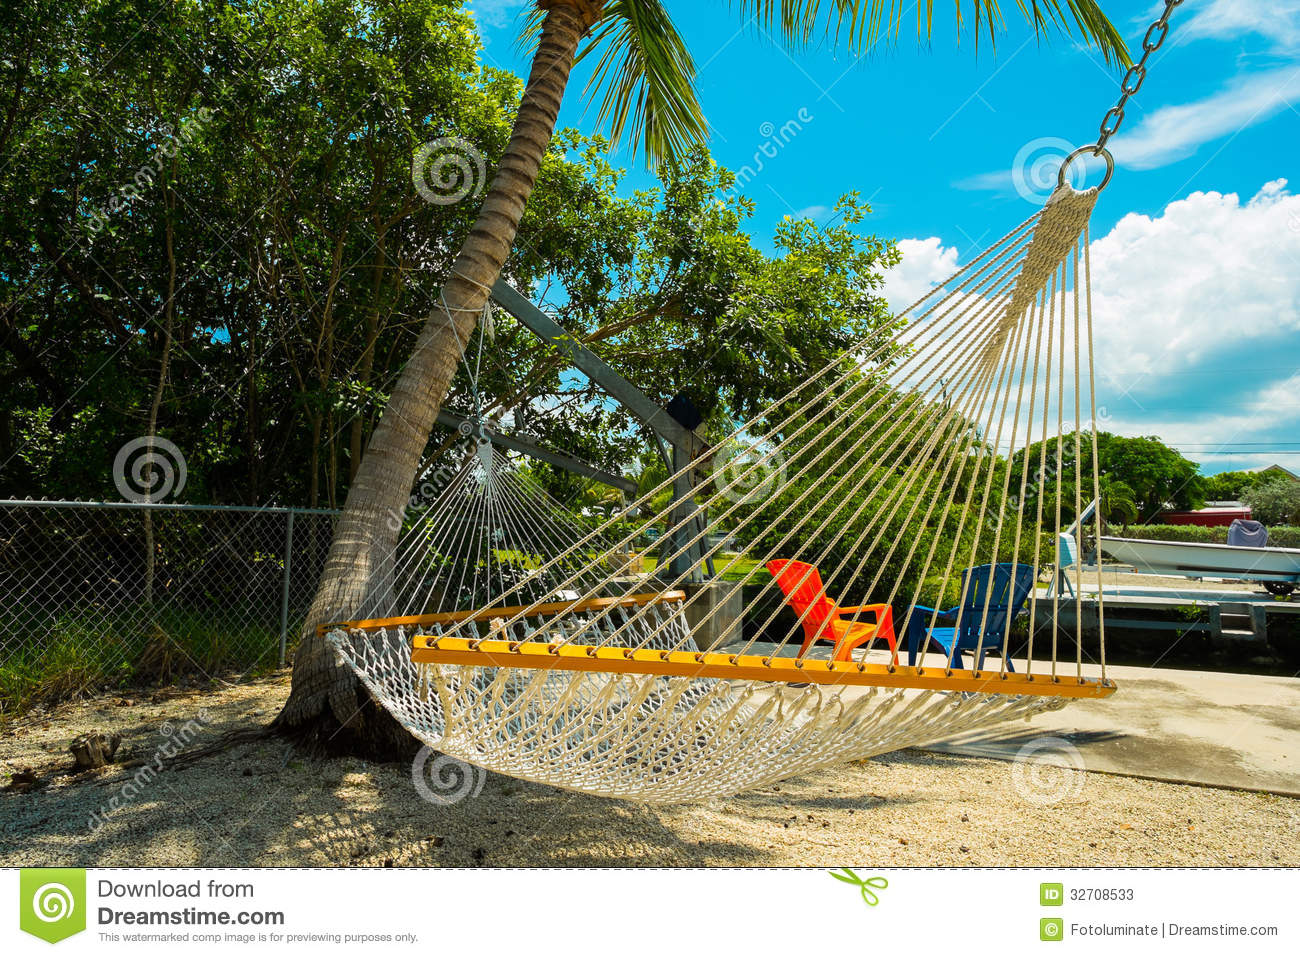 Hammock Hanging From A Palm Tree In The Backyard Of A Florida Keys